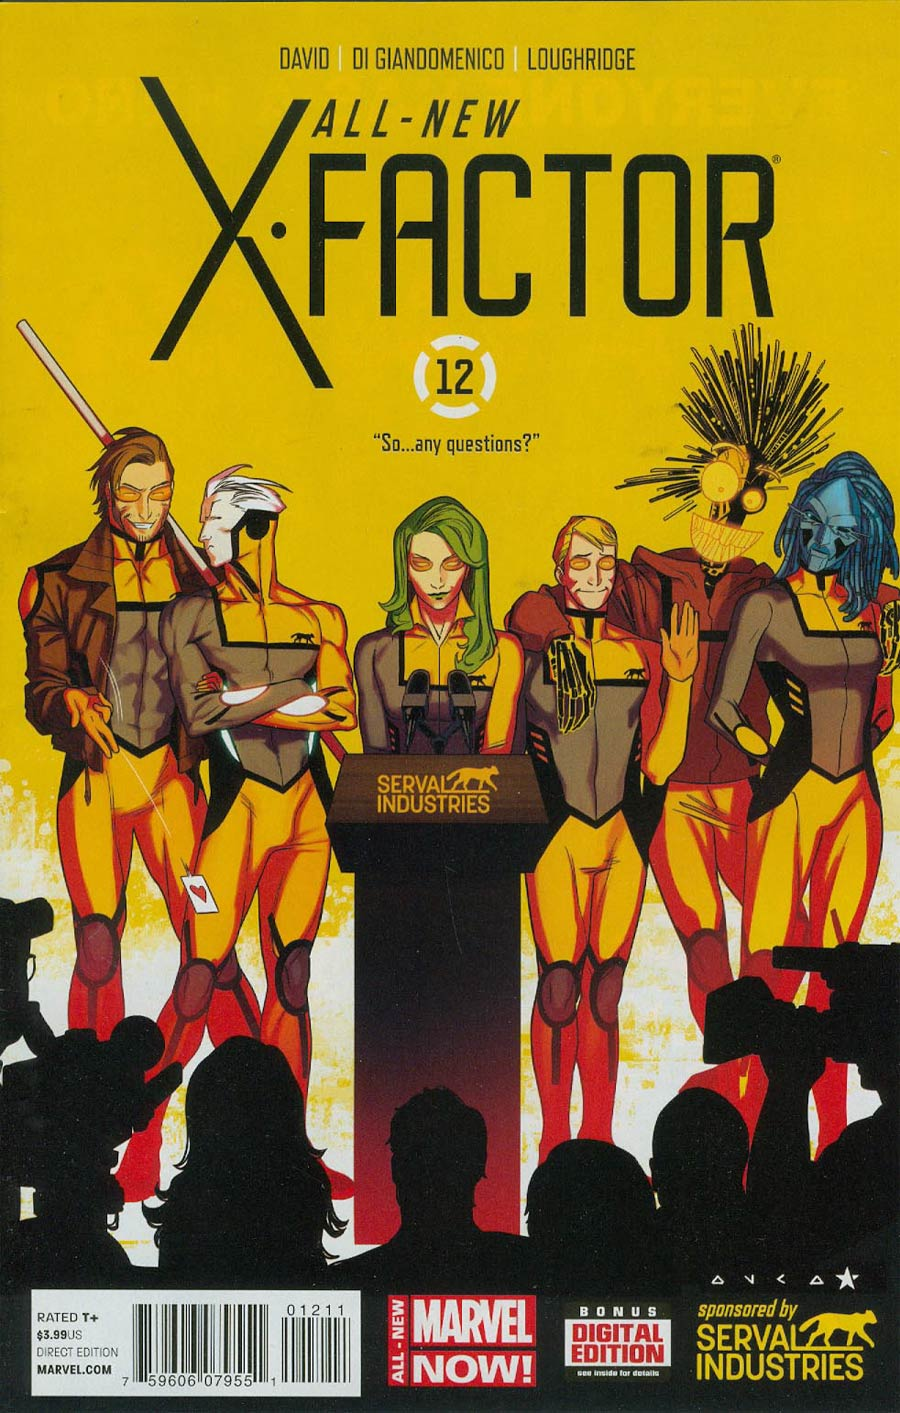 All-New X-Factor #12